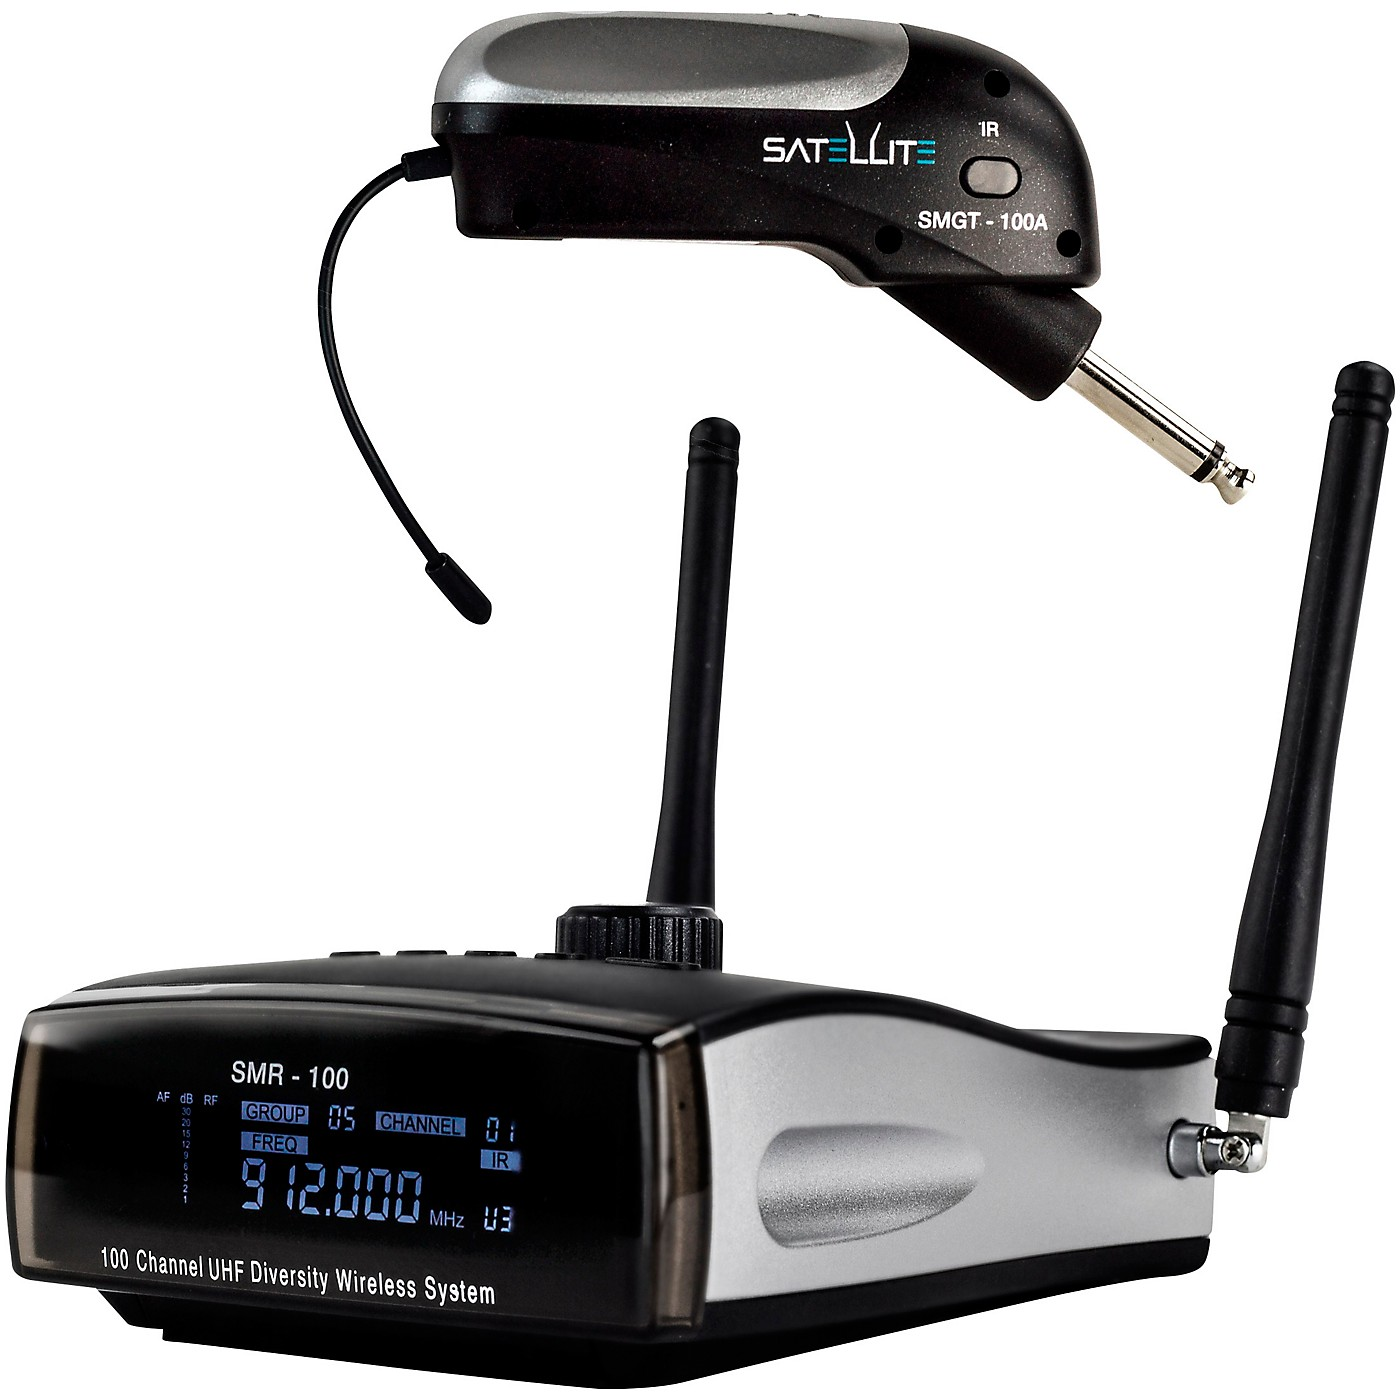 Nady Satellite SMGT-100A True Diversity Wireless Instrument System for Electric Guitar or Bass, Top Mounted thumbnail